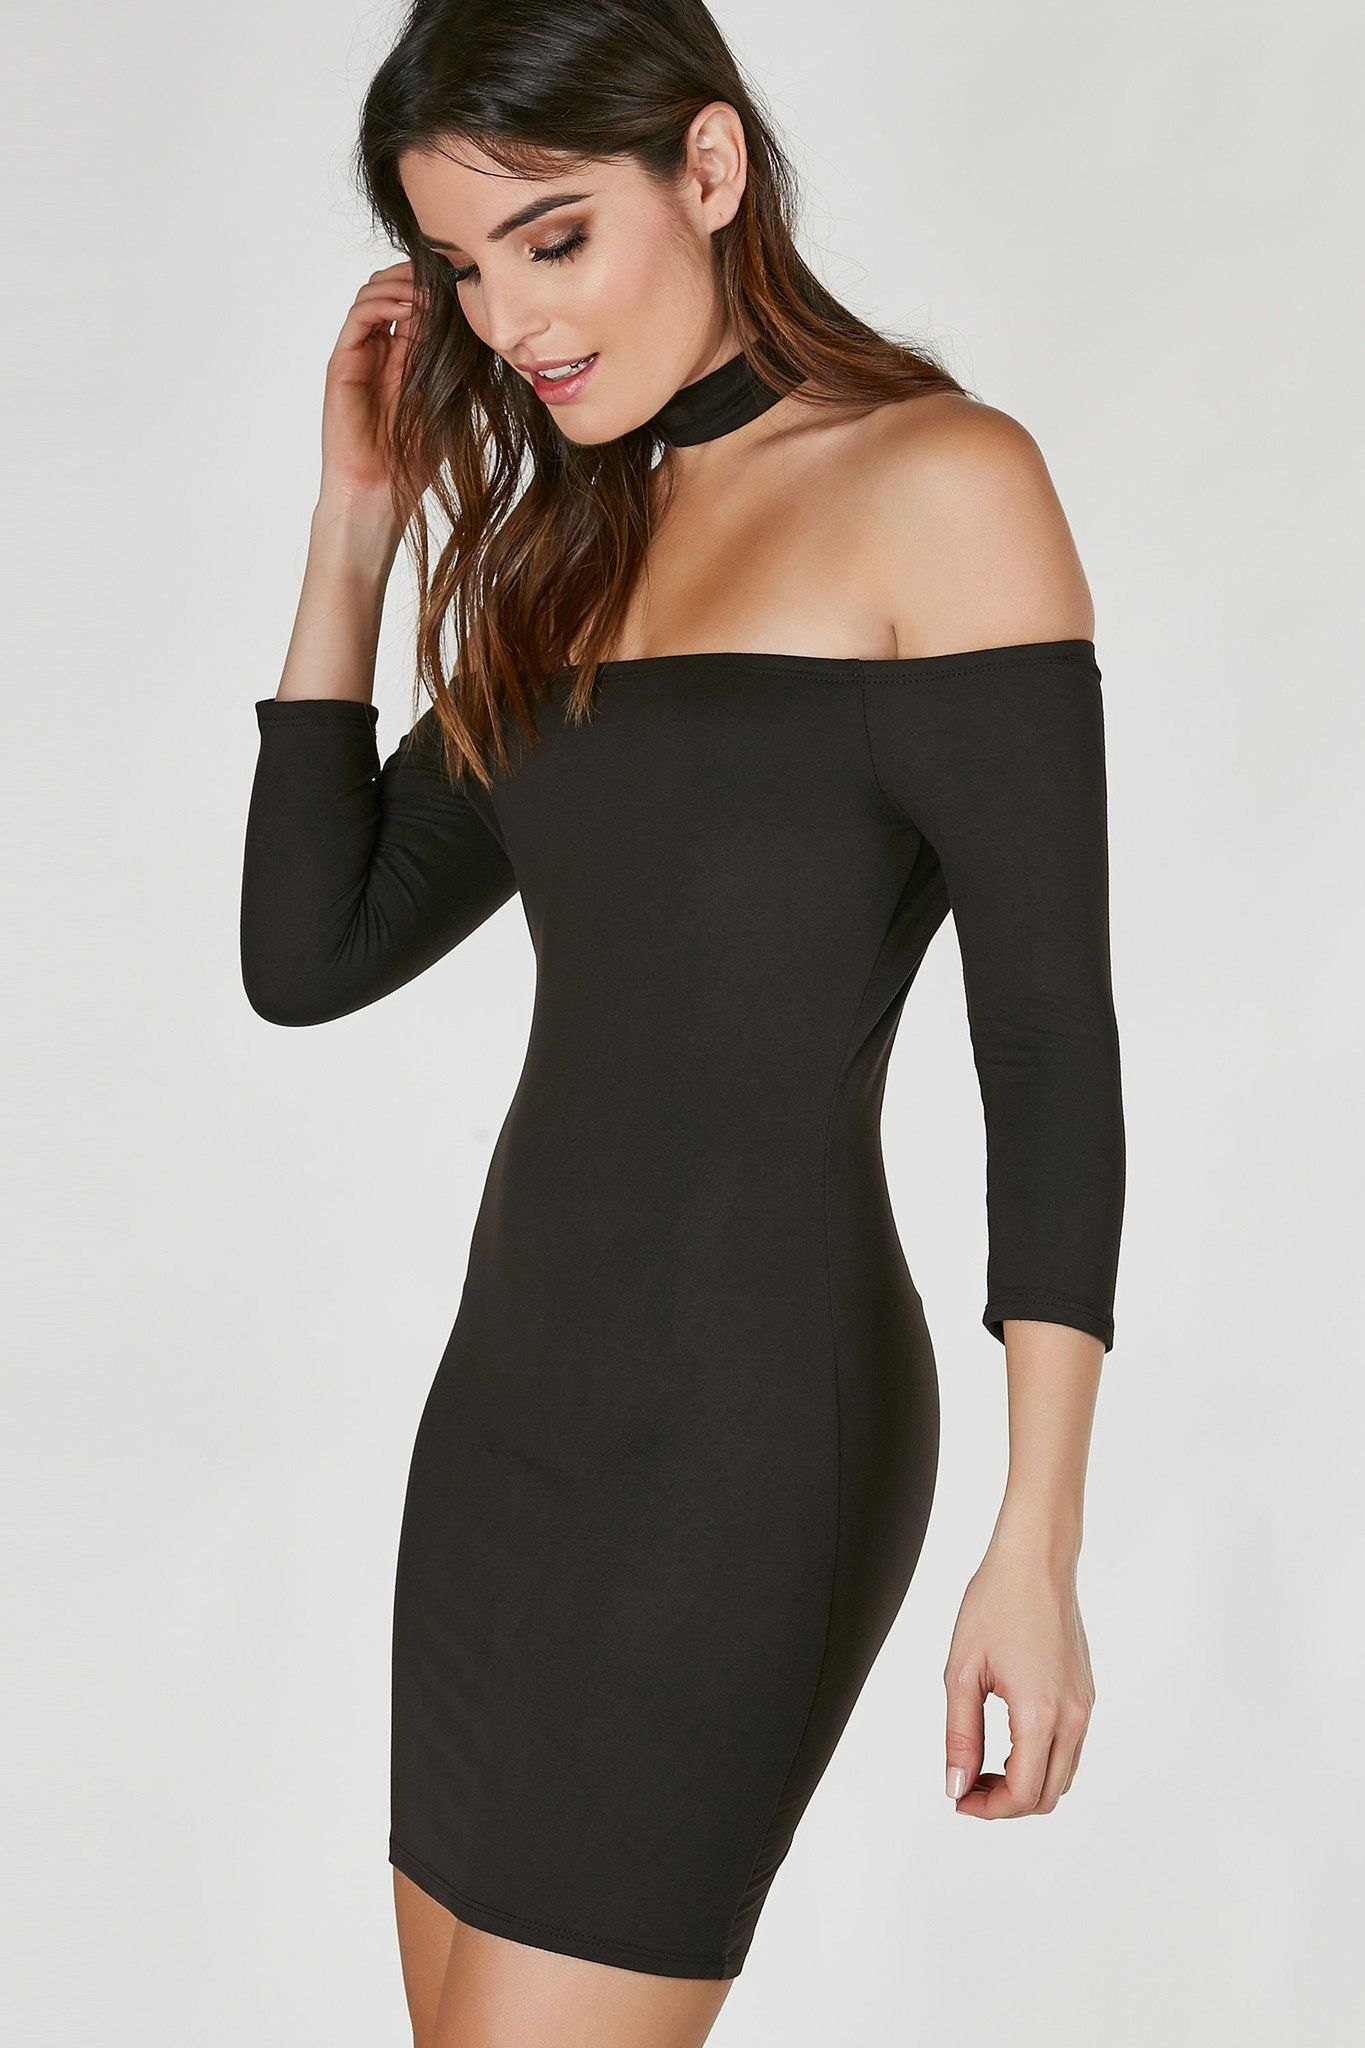 Simple off shoulder dress with trendy choker neckline soft